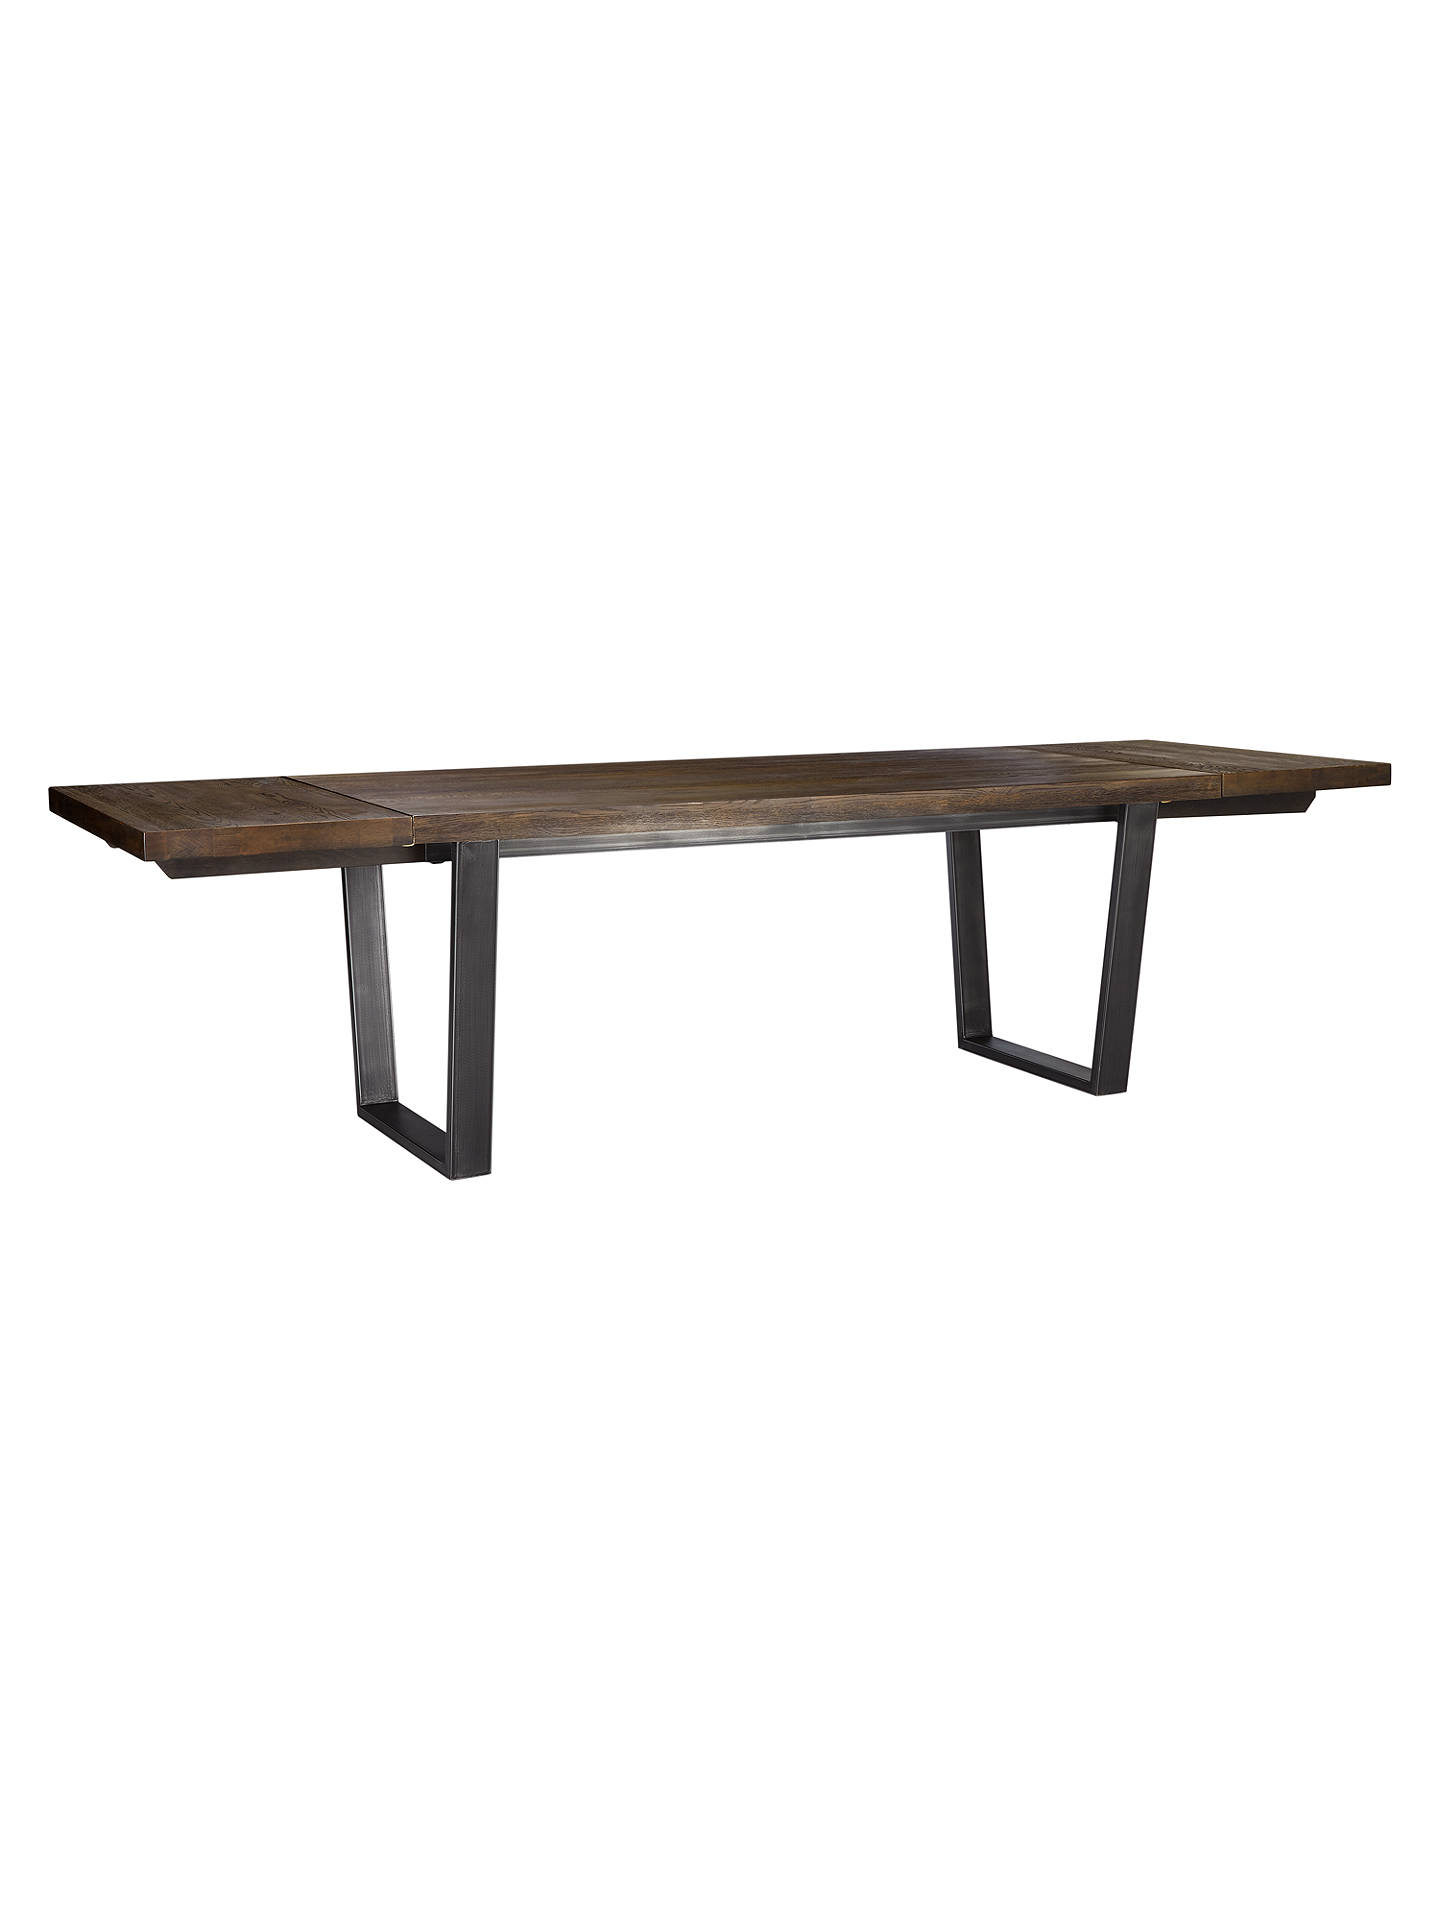 BuyJohn Lewis & Partners Calia 8-12 Seater Extending Dining Table, Dark Online at johnlewis.com